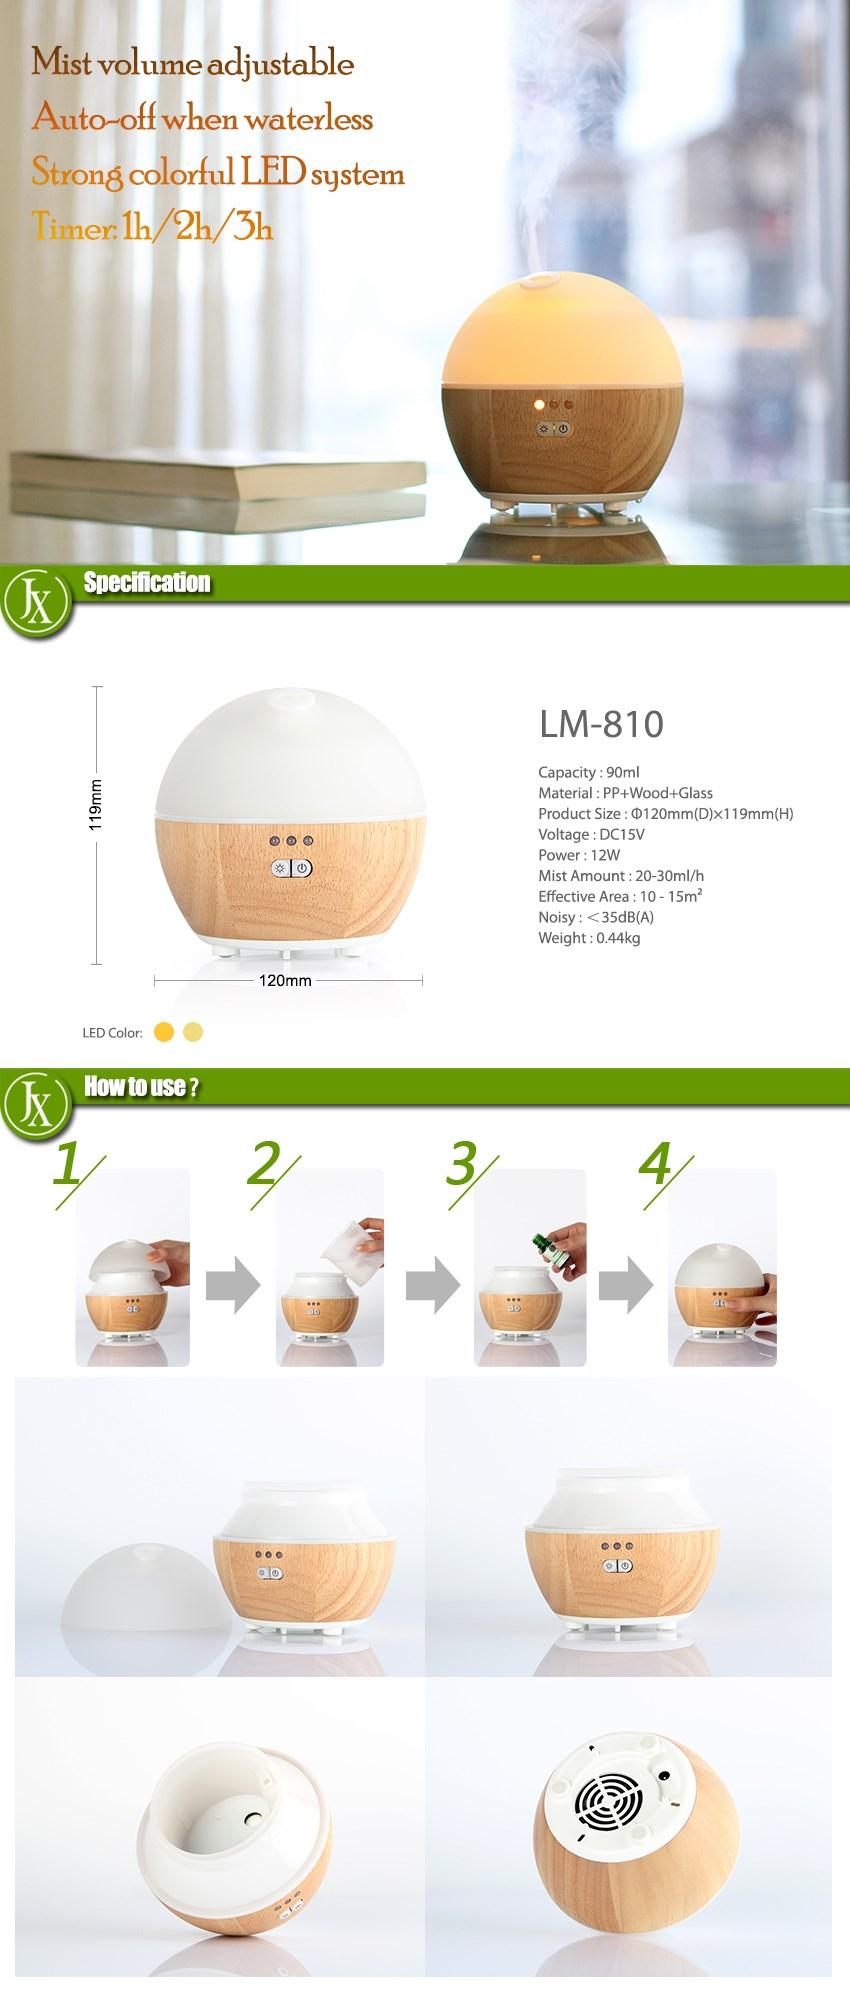 Health Care Product with LED Color Light Ultrasonic Aroma Diffuser with Nebulizing Diffuser WOOD + GLASS